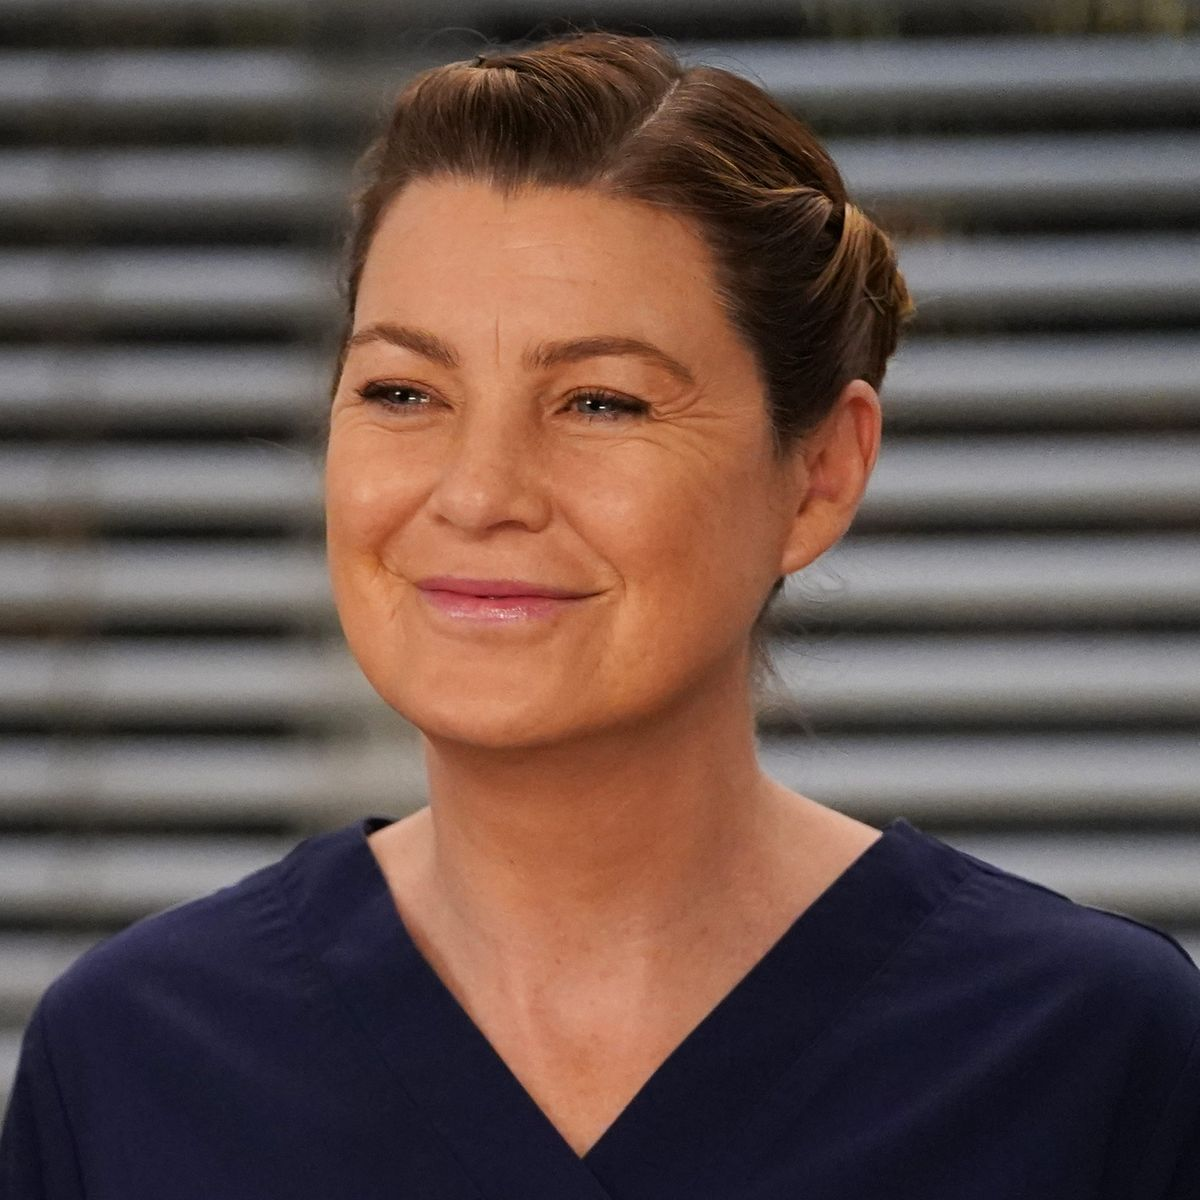 """ellen-pompeo-50-gets-candid-about-aging-on-screen-during-greys-anatomys-16-seasons-admits-its-not-so-fun-and-talks-plans-to-leave"""